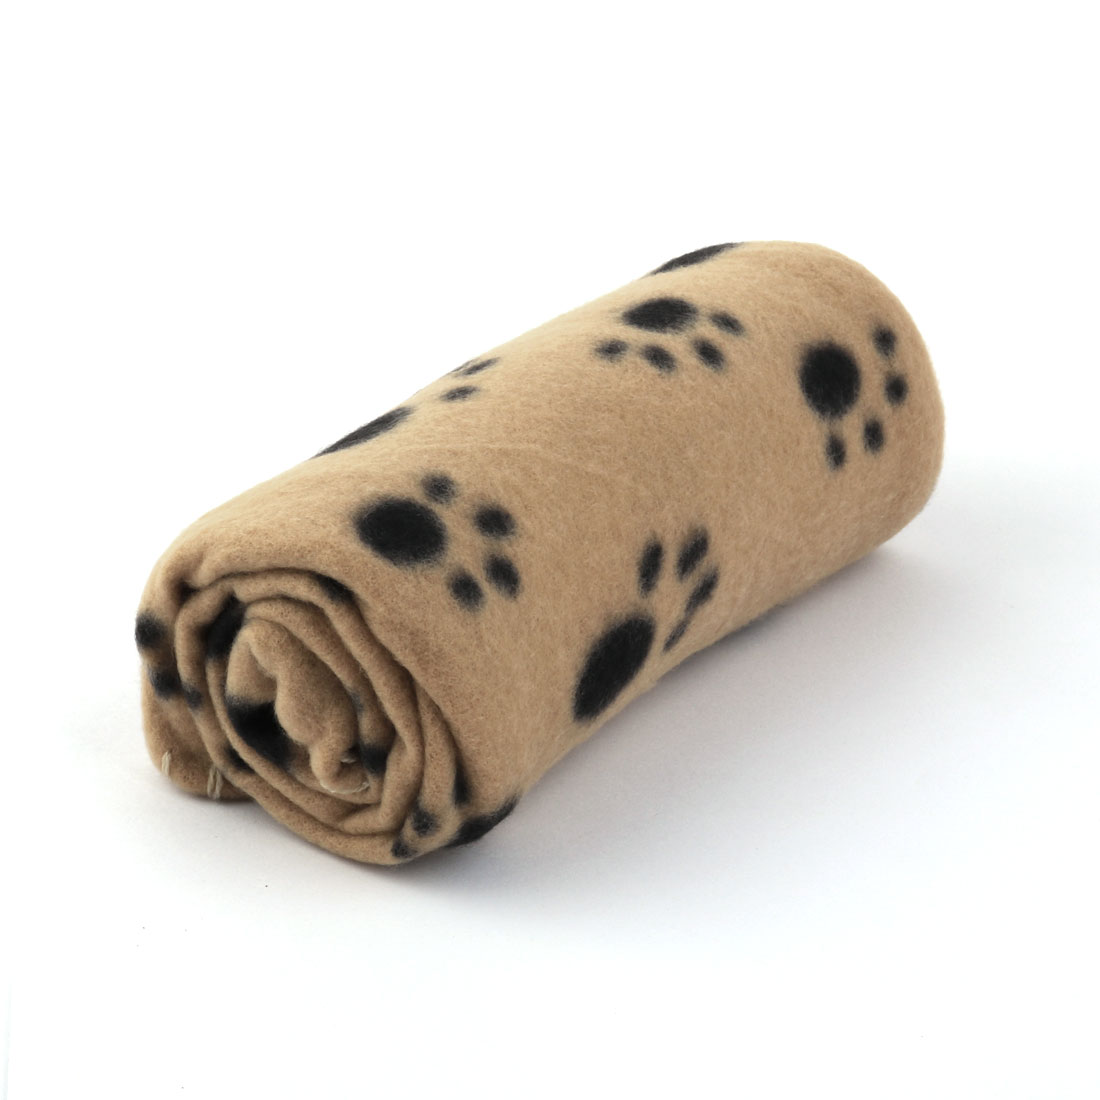 pet dog cat puppy bed mat soft blanket 70cm x 60cm275 x 236 inch